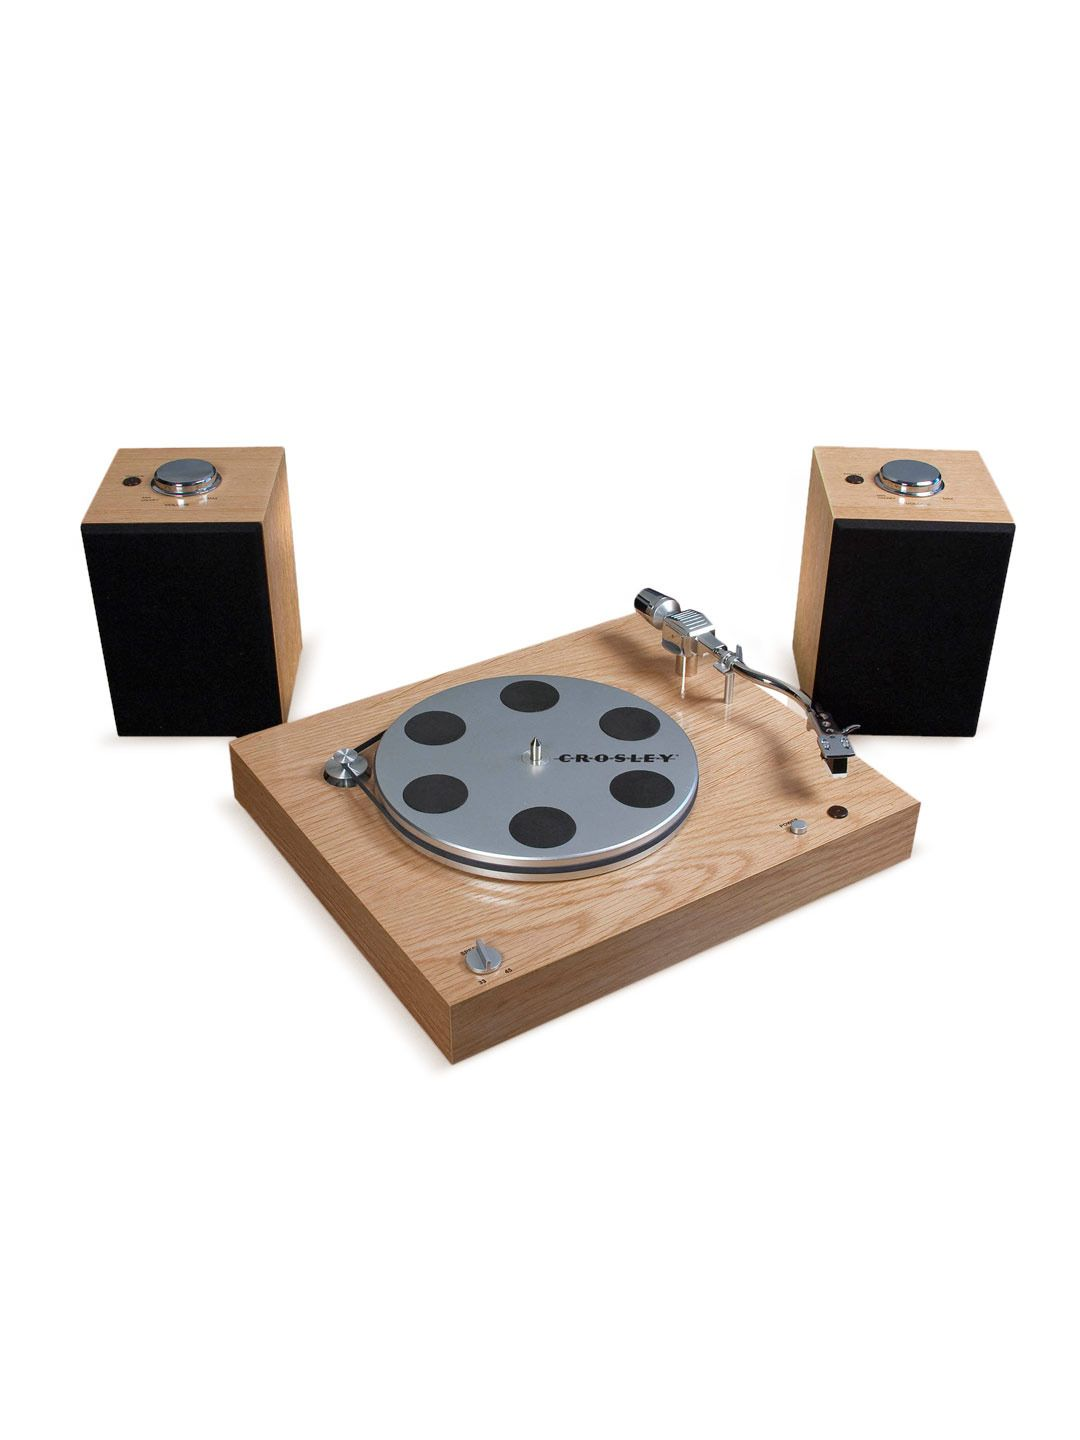 Audiophile Turntable with Wireless Speakers - Gilt Home - for the man cave